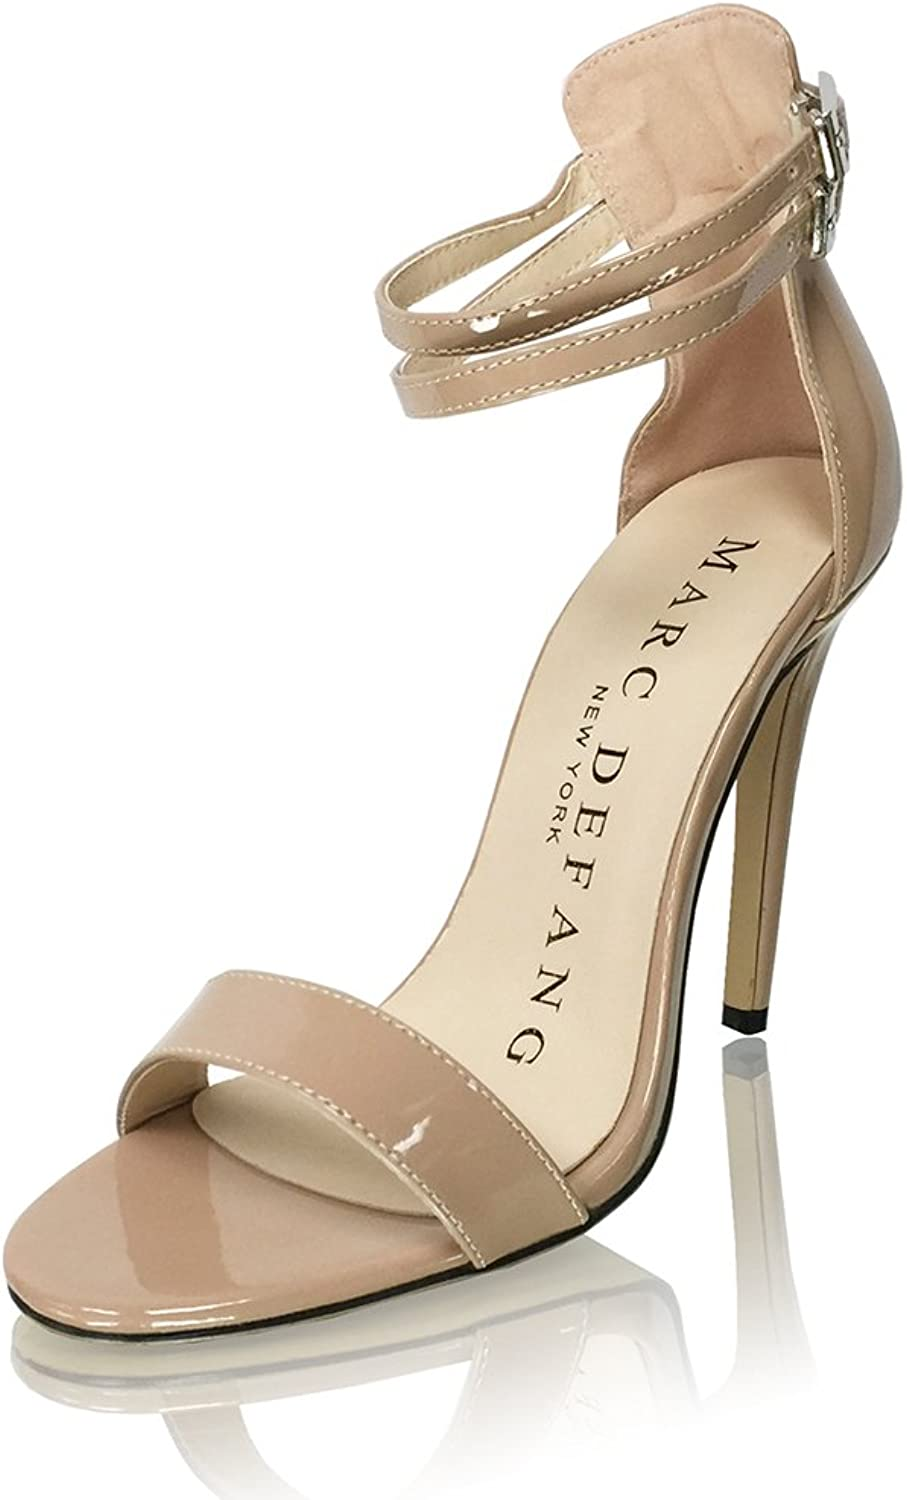 Marc Defang New York Women's Nude Patent Leather Double Buckle Strap Sandal Heels